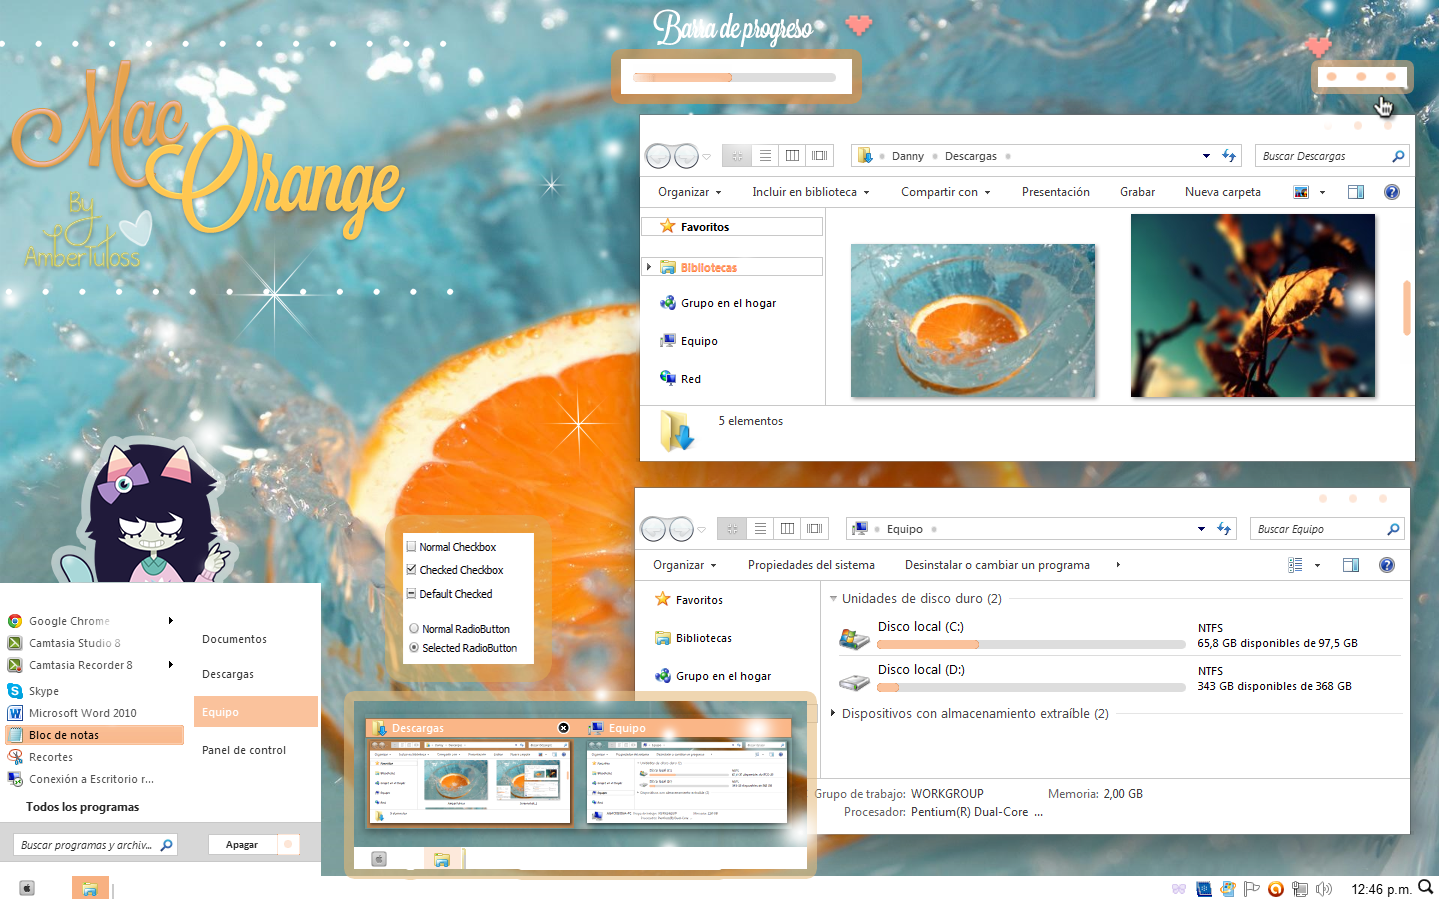 Mac orange windows 7 by waatt on deviantart - Mac dan orange les vignes ...